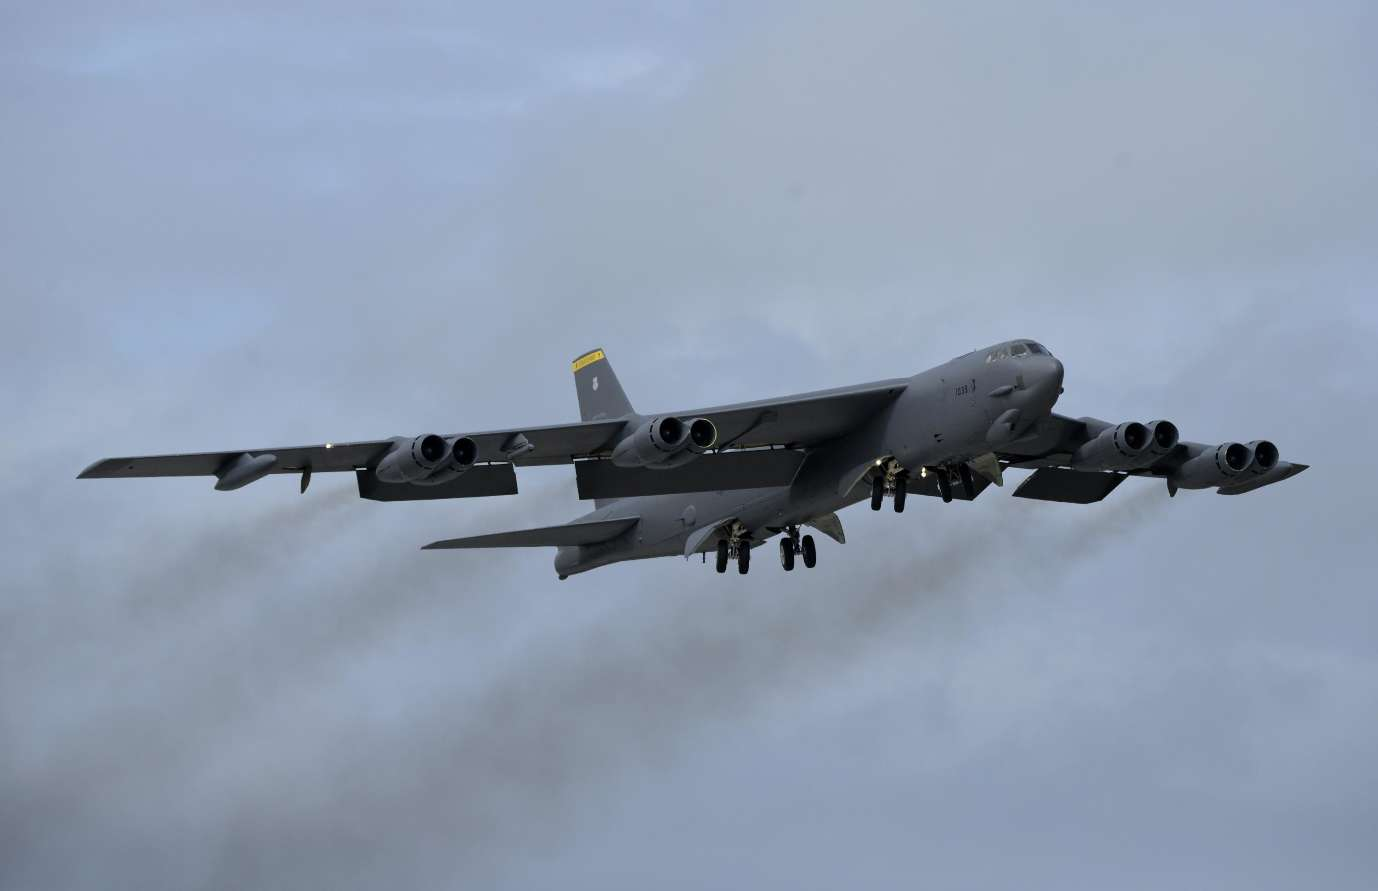 B-52s perform joint, combined missions in Indo-Asia-Pacific